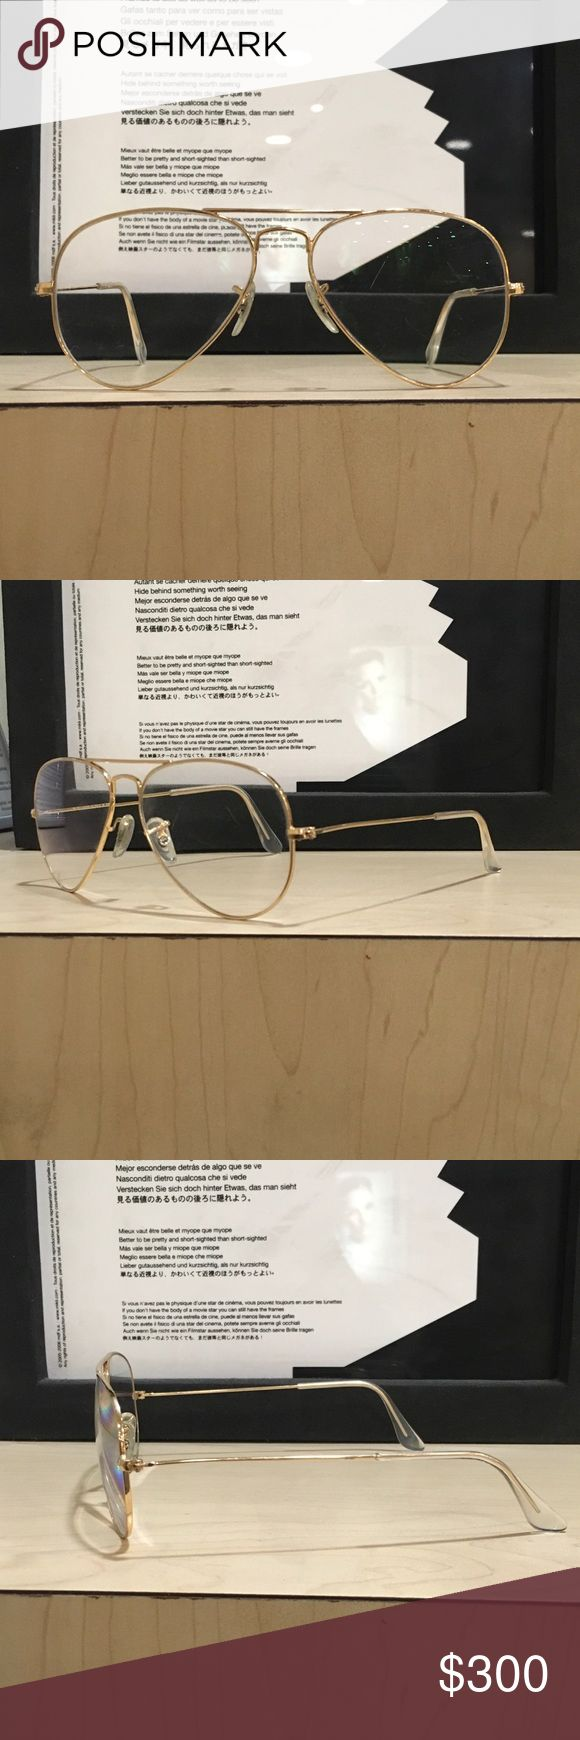 Ray ban aviators size 55-14 new These are ray bans aviators with clear lenses for fashion. I can add your prescription if it valid and you have your PD. Ray-Ban Accessories Glasses